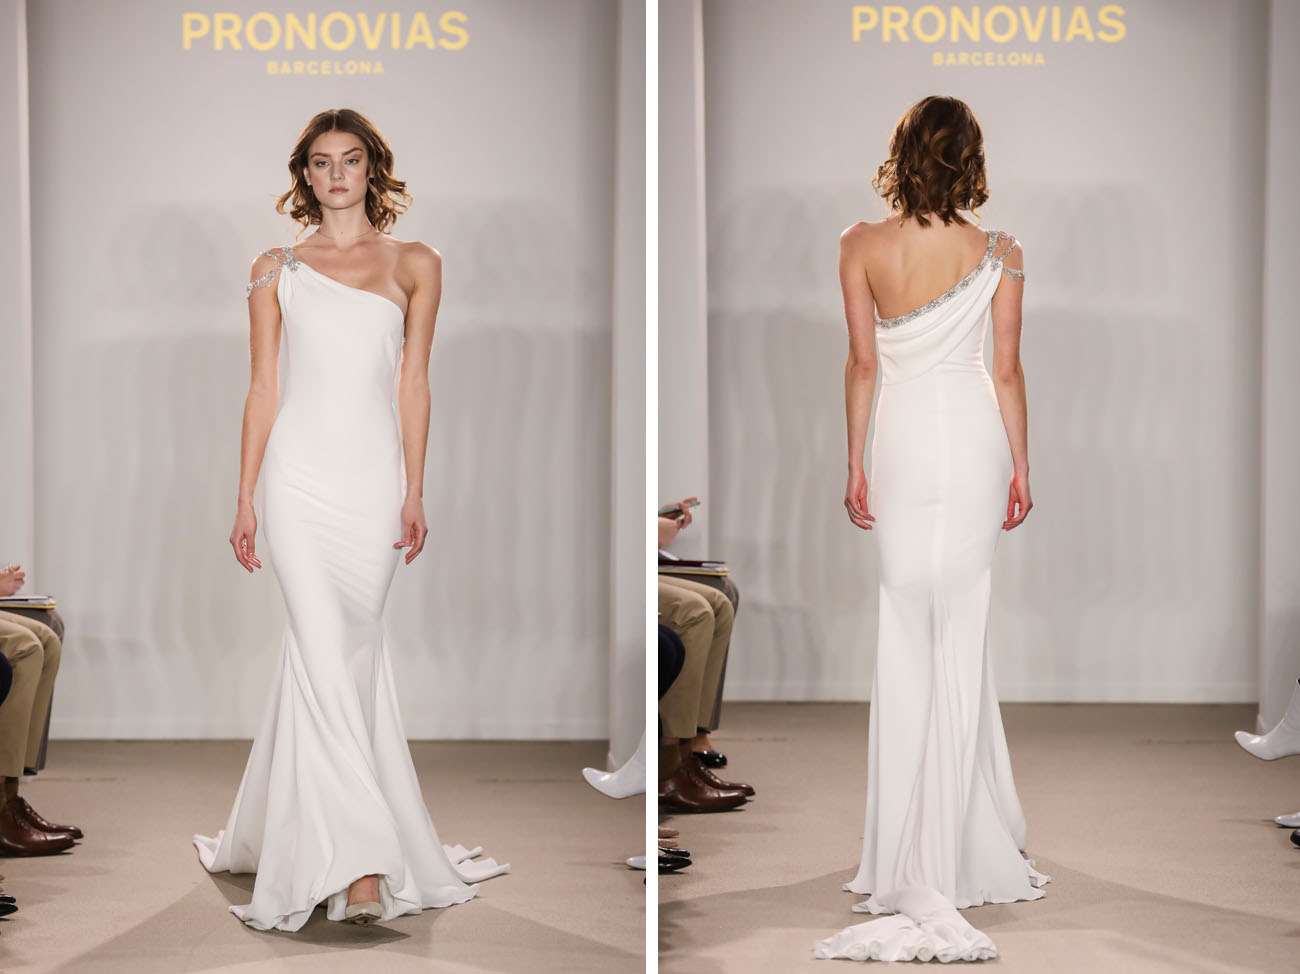 s 2018 Atelier Pronovias Preview Collection